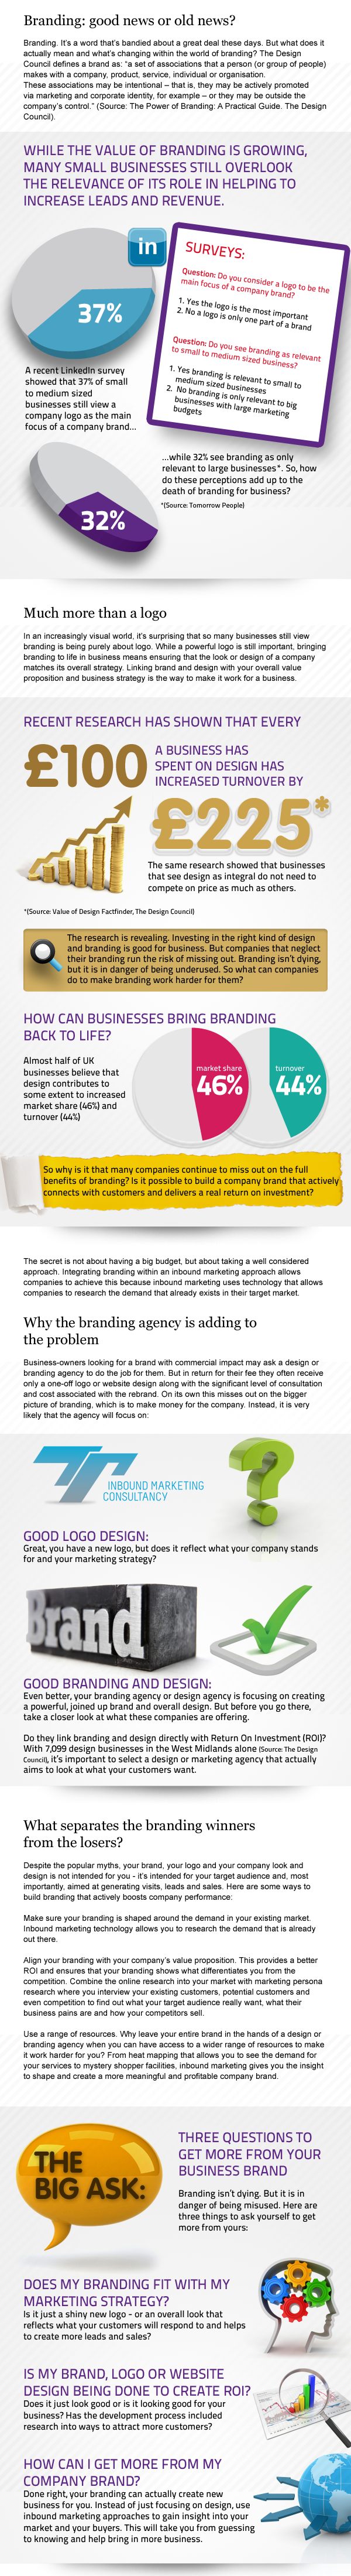 Infographic - Death of Branding